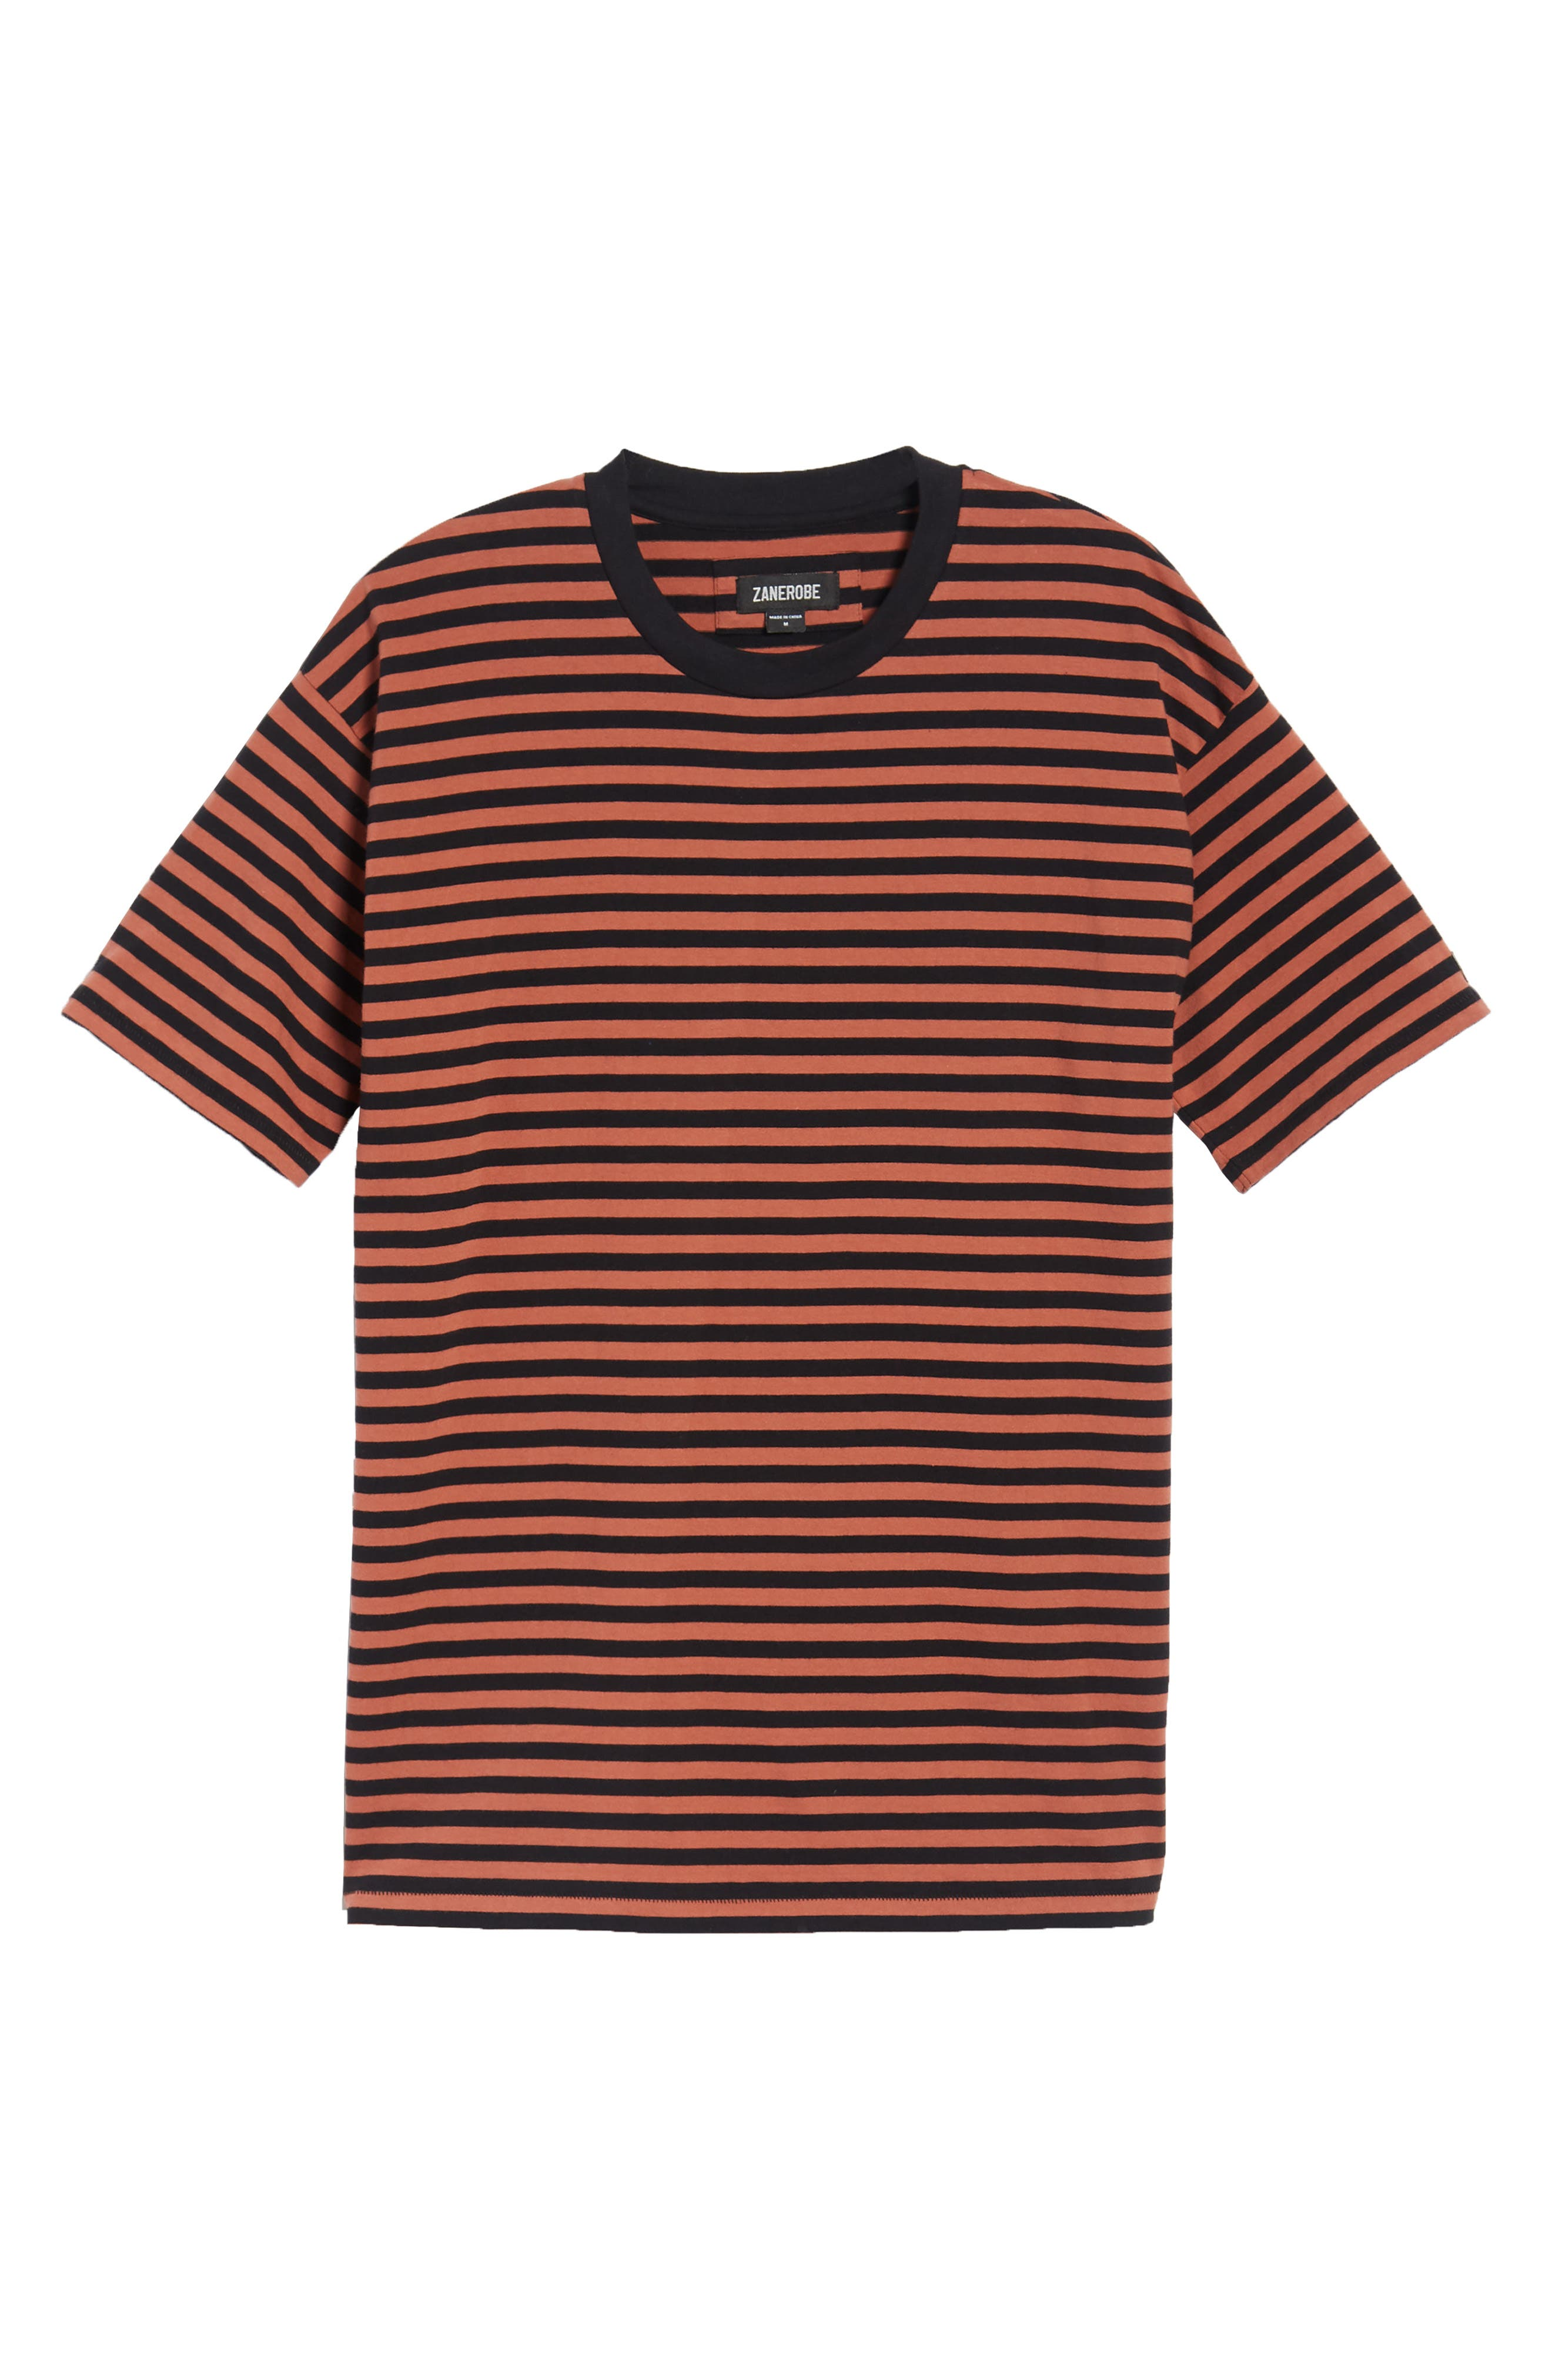 ZABEROBE Stripe Box T-Shirt,                             Main thumbnail 1, color,                             Bronze/ Black